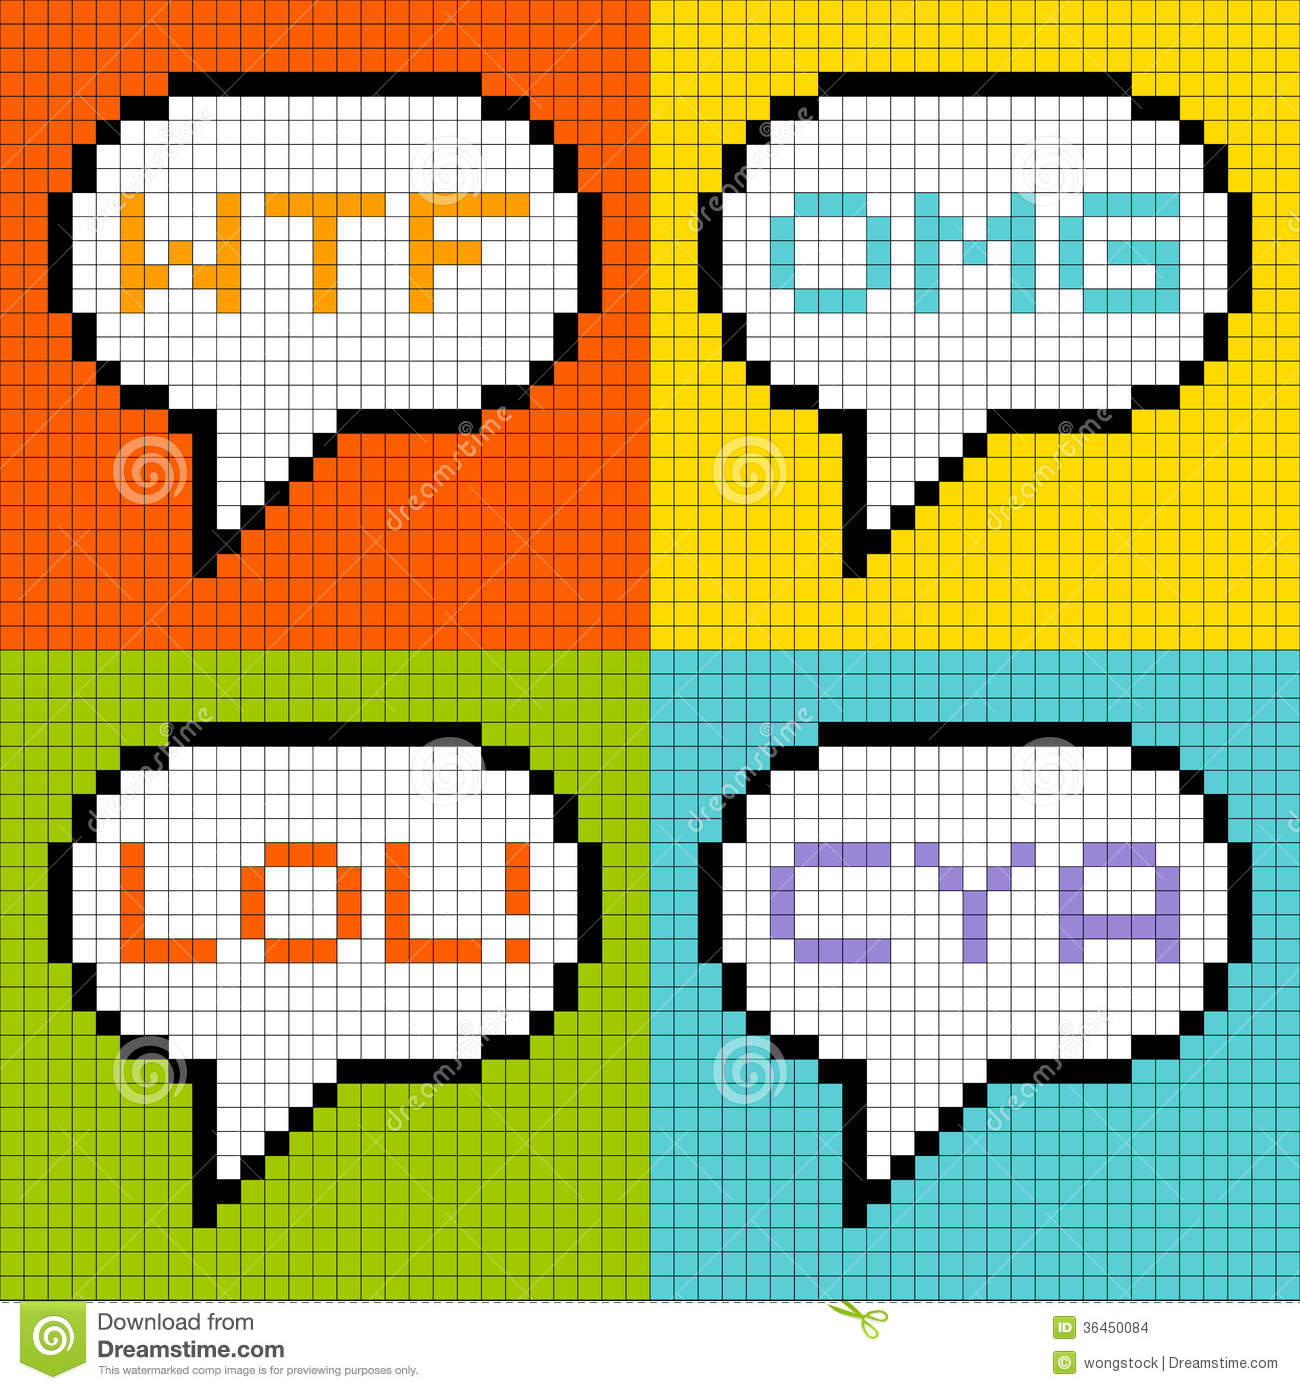 8 bit pixel 3 letter acronyms in speech bubbles stock Cookie Monster Coloring Pages Baby Cookie Monster Vector